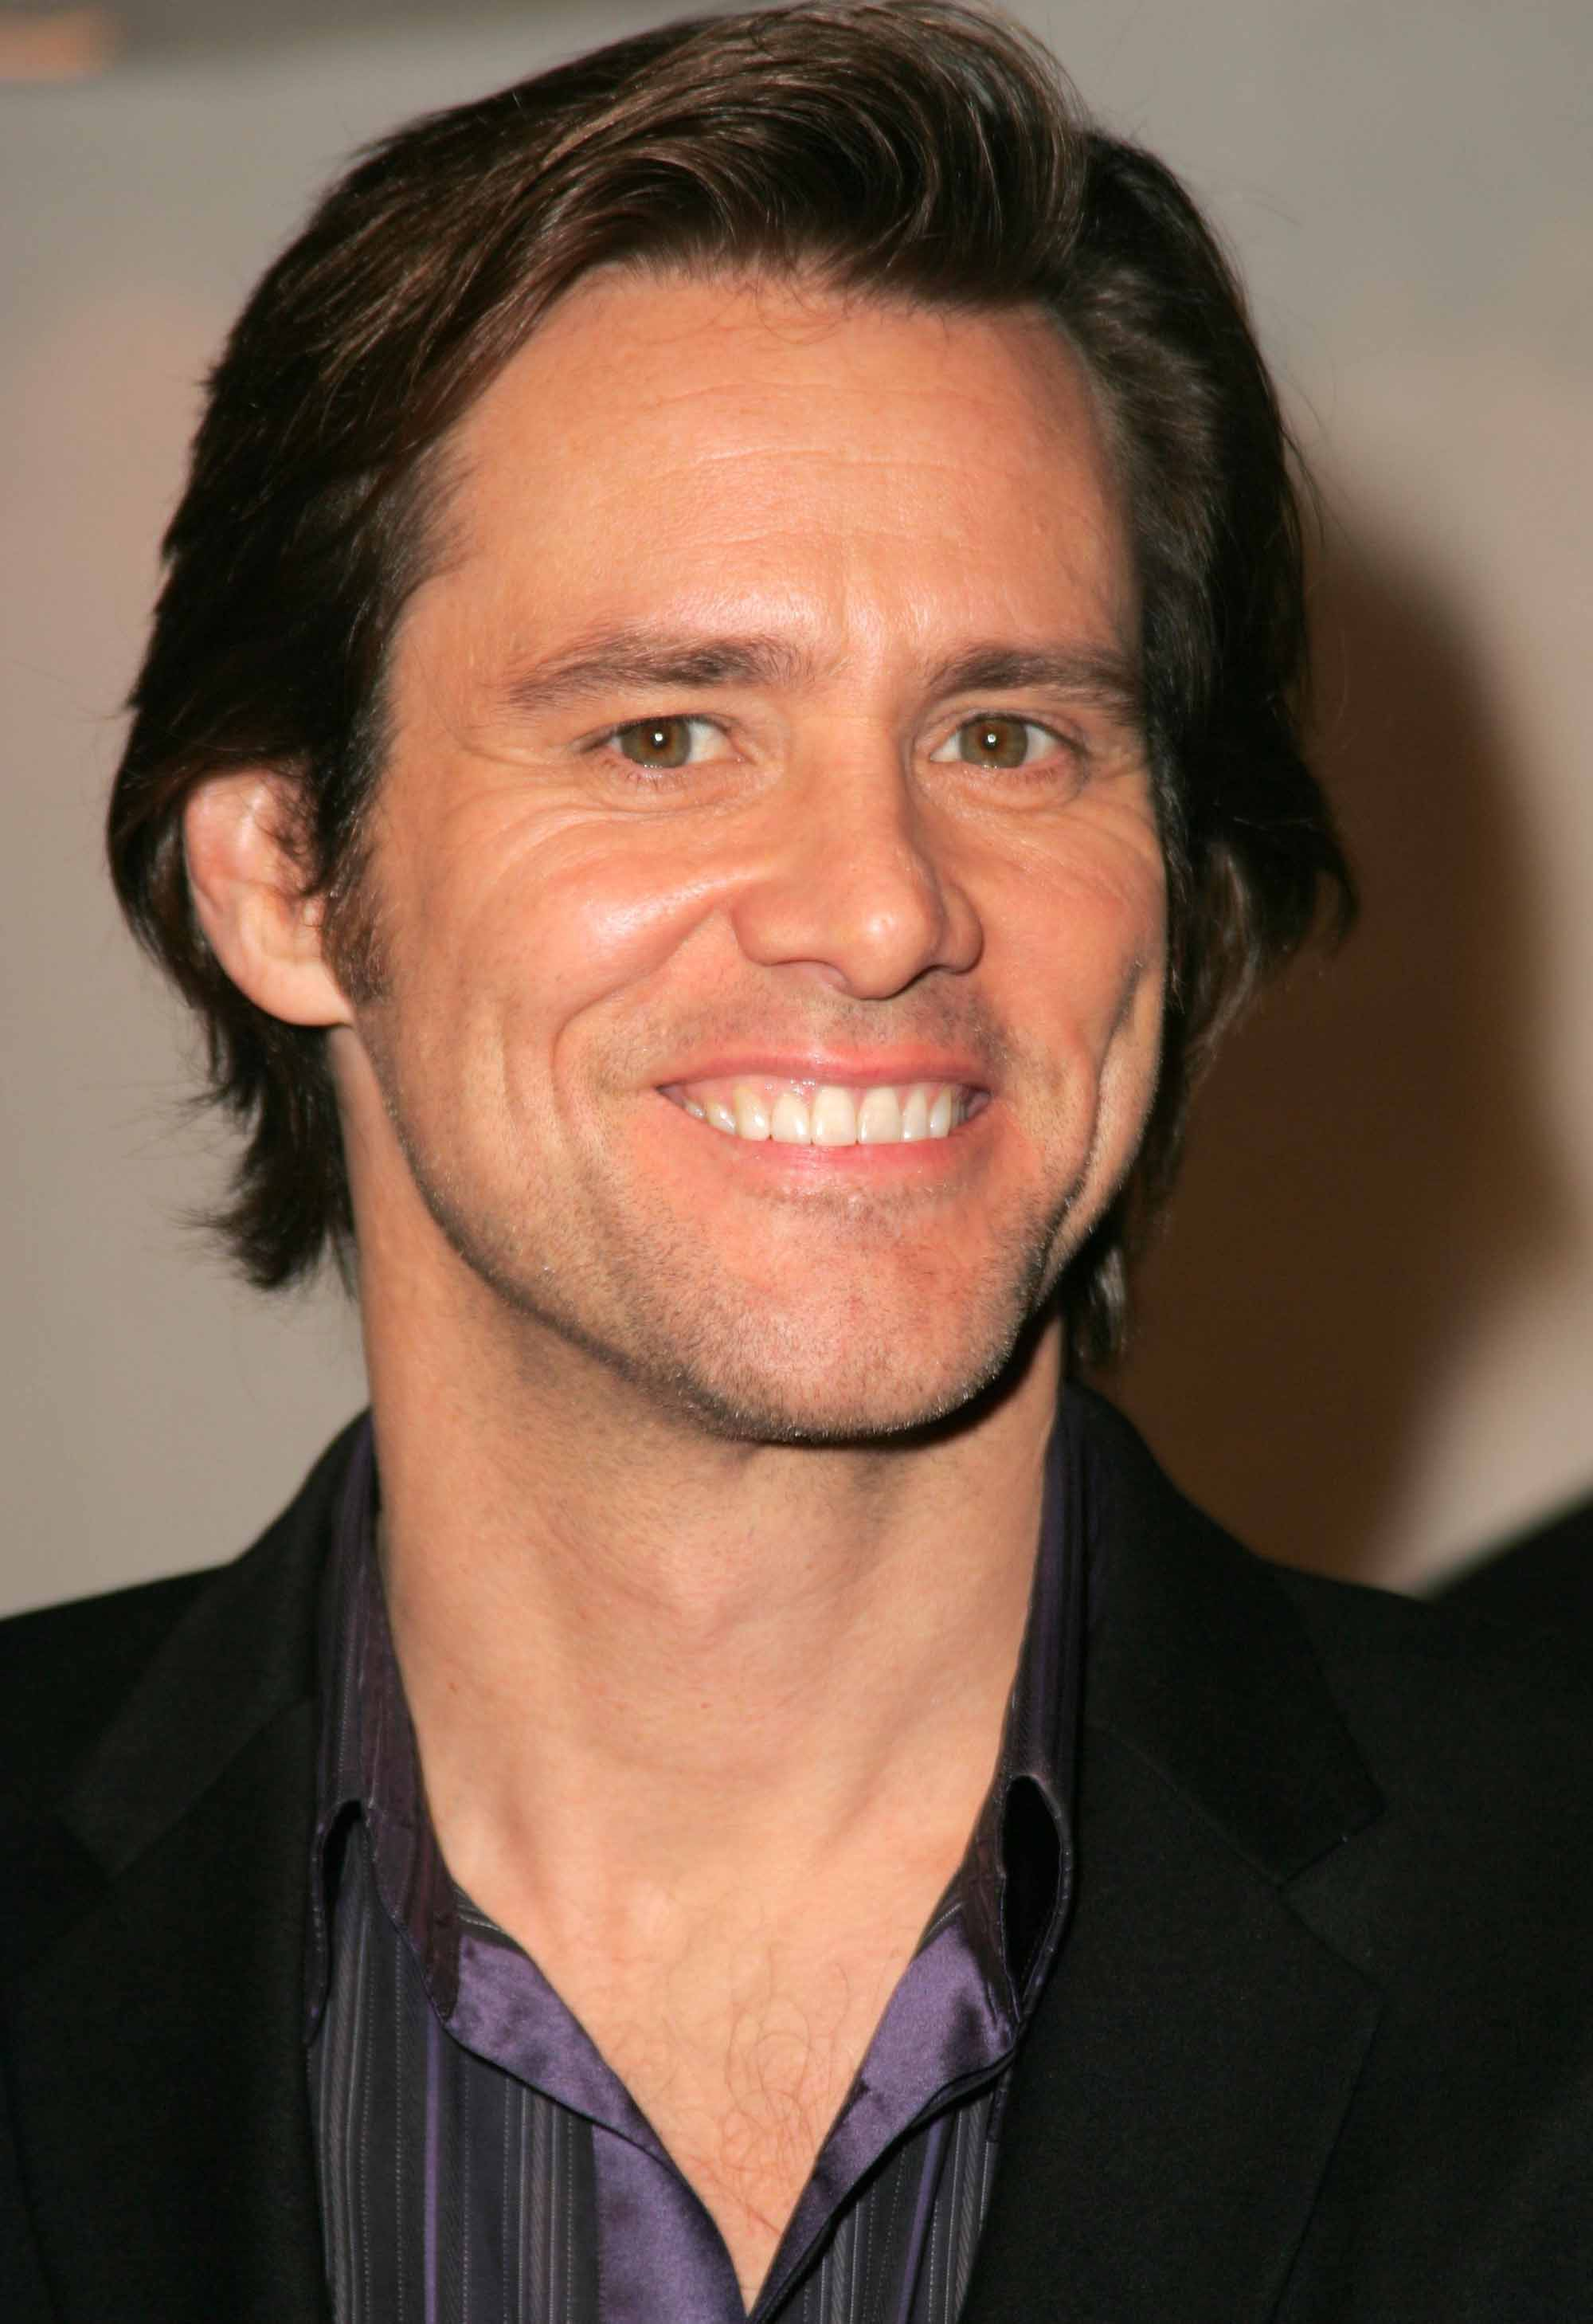 Jim Carrey L Encyclop 233 Die Canadienne